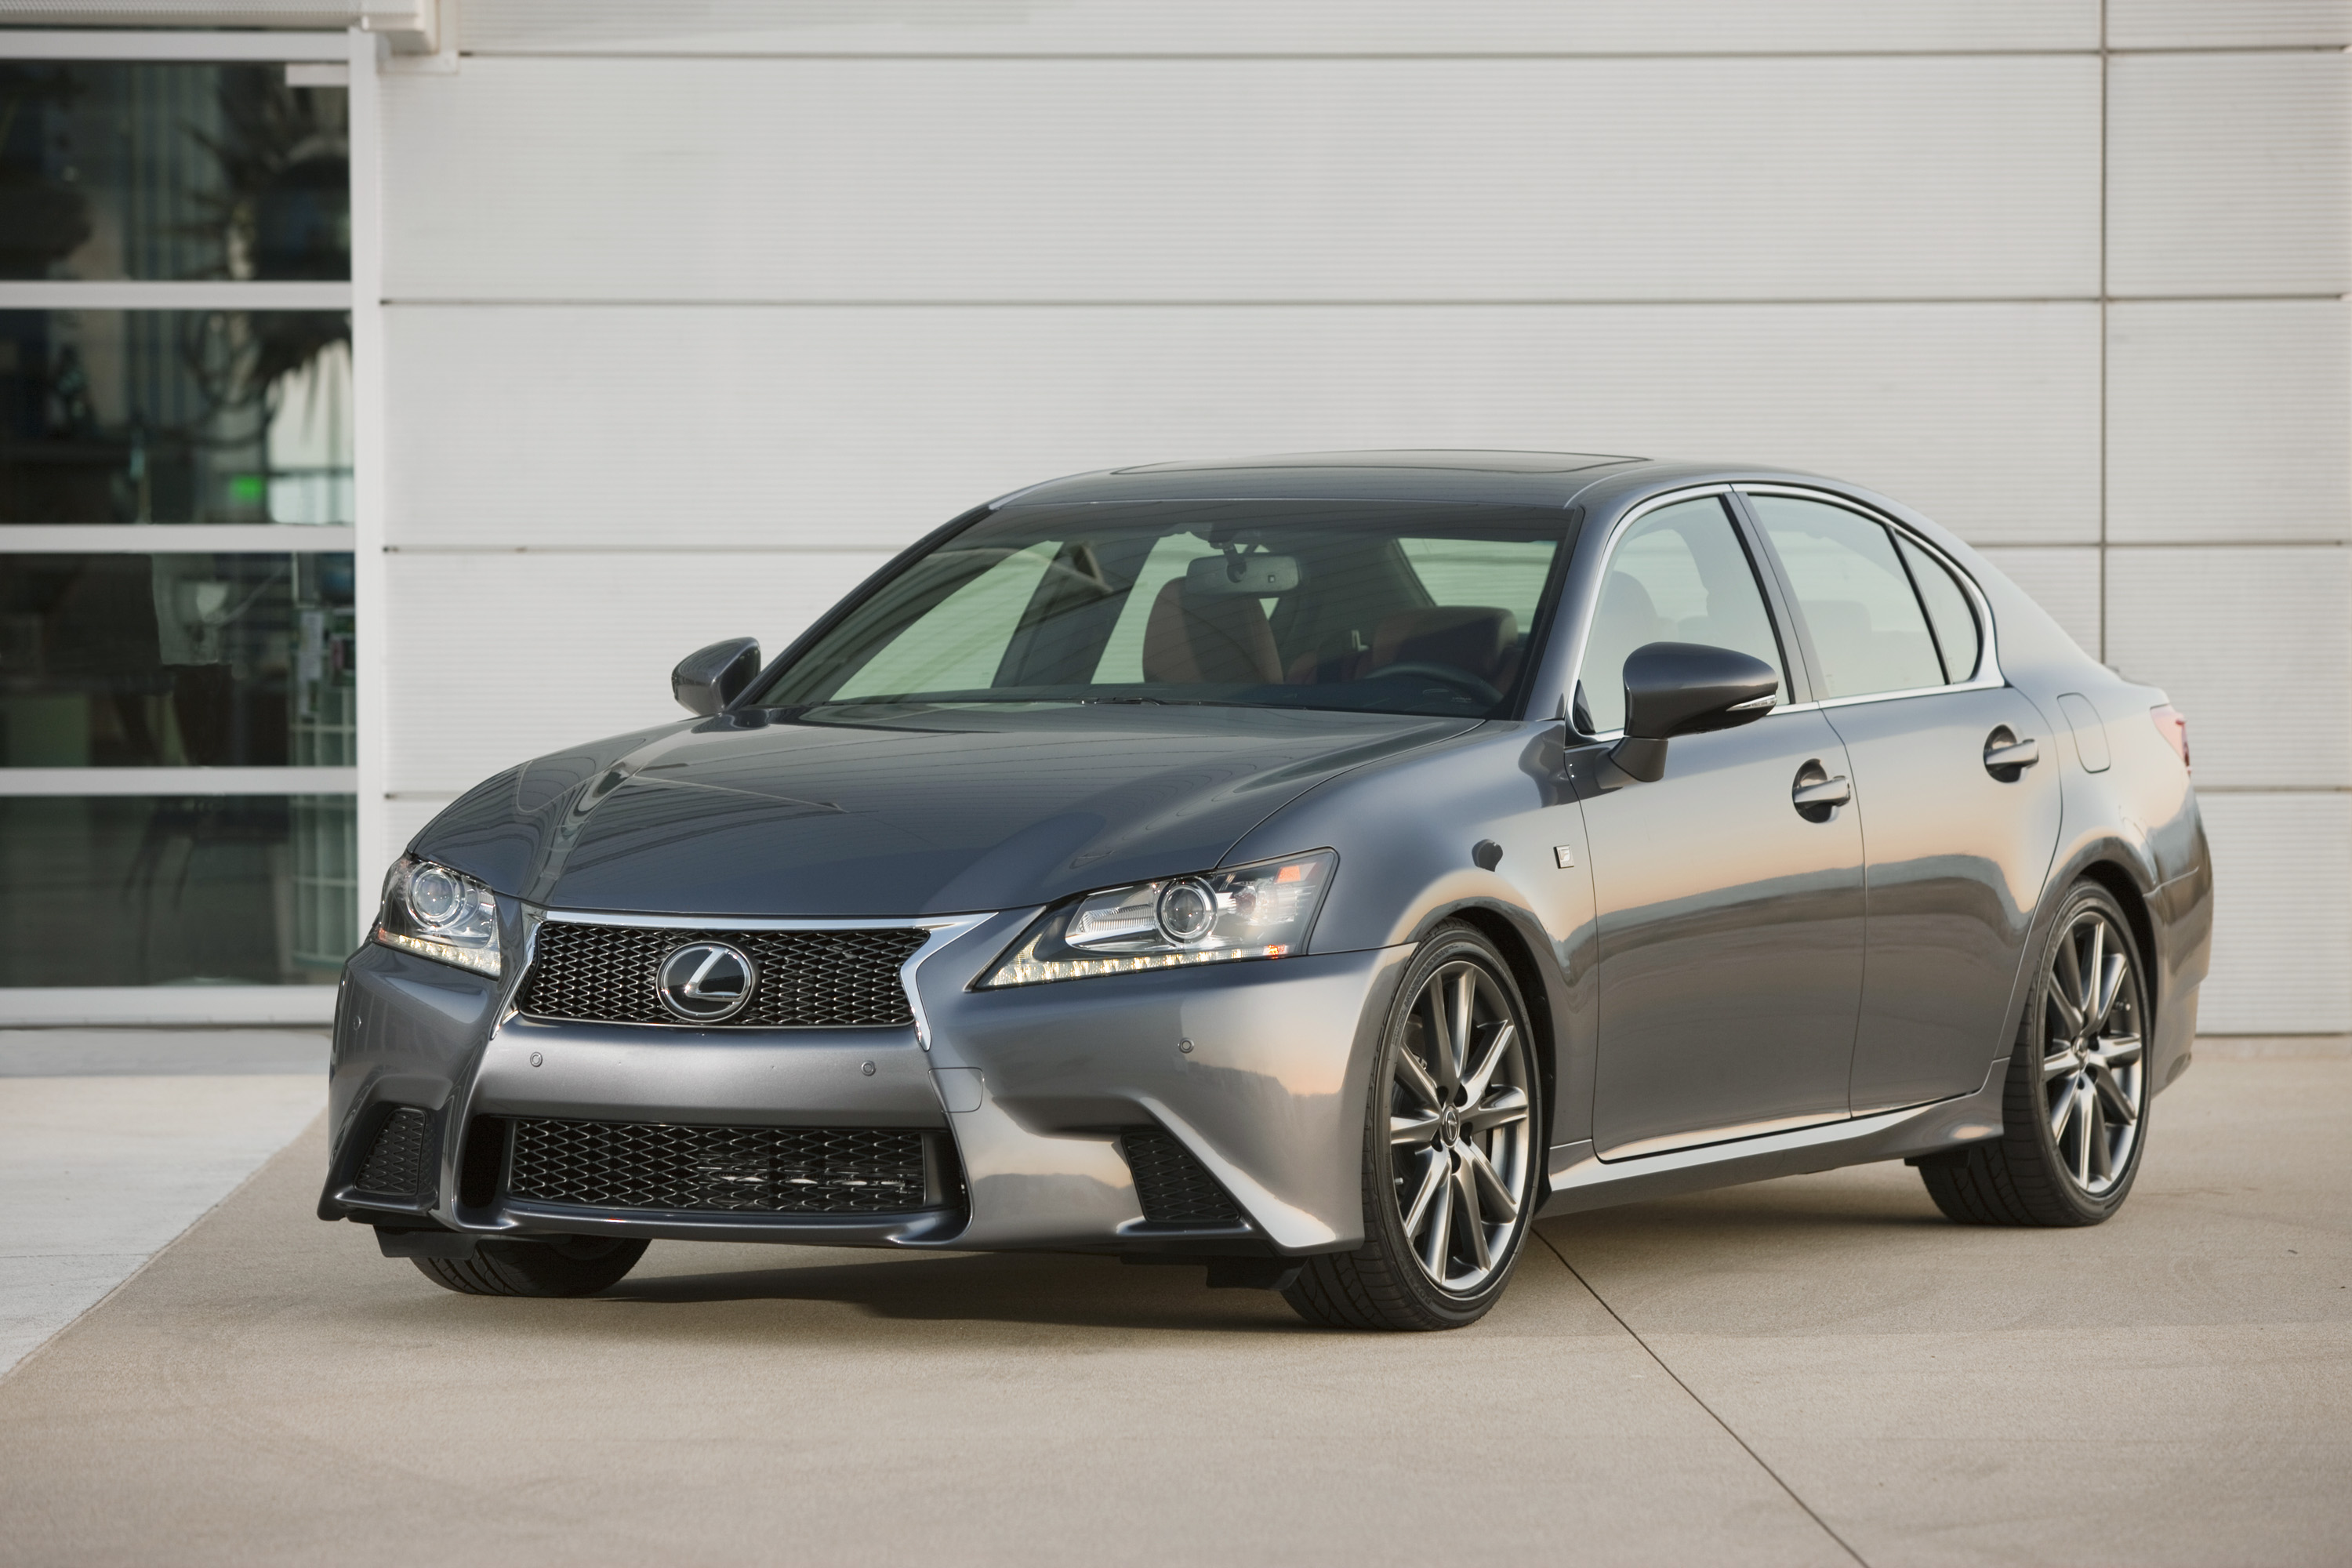 gallery f gs photo review lexus autoblog photos sport